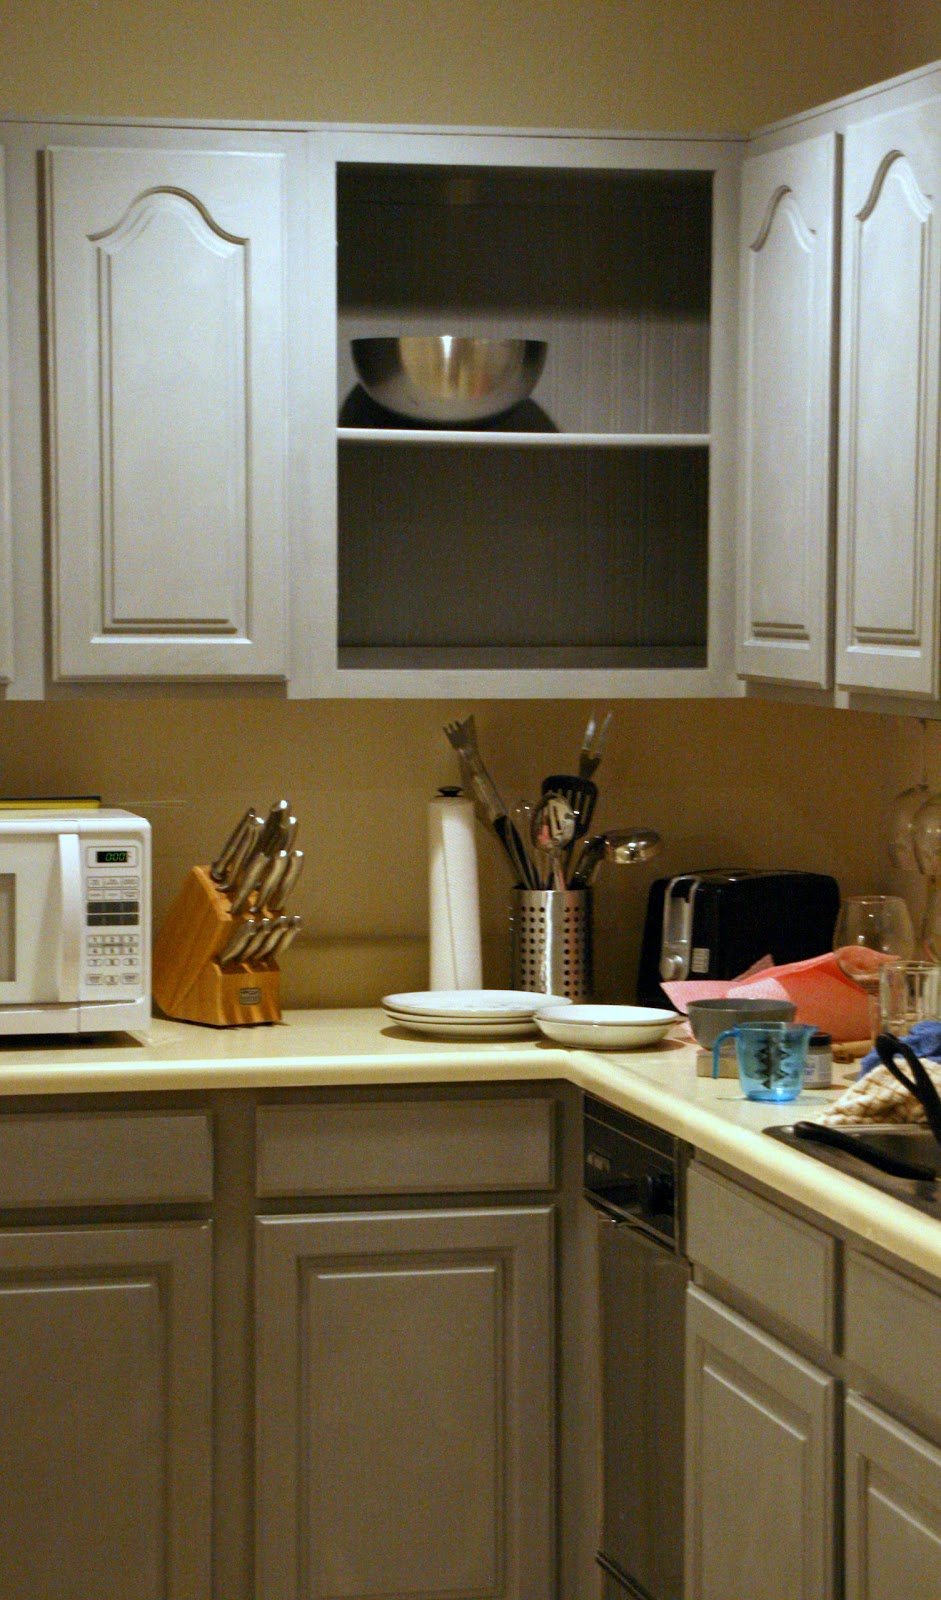 Lake house mojo chalk paint kitchen cupboards for Can i paint kitchen cabinets with chalk paint